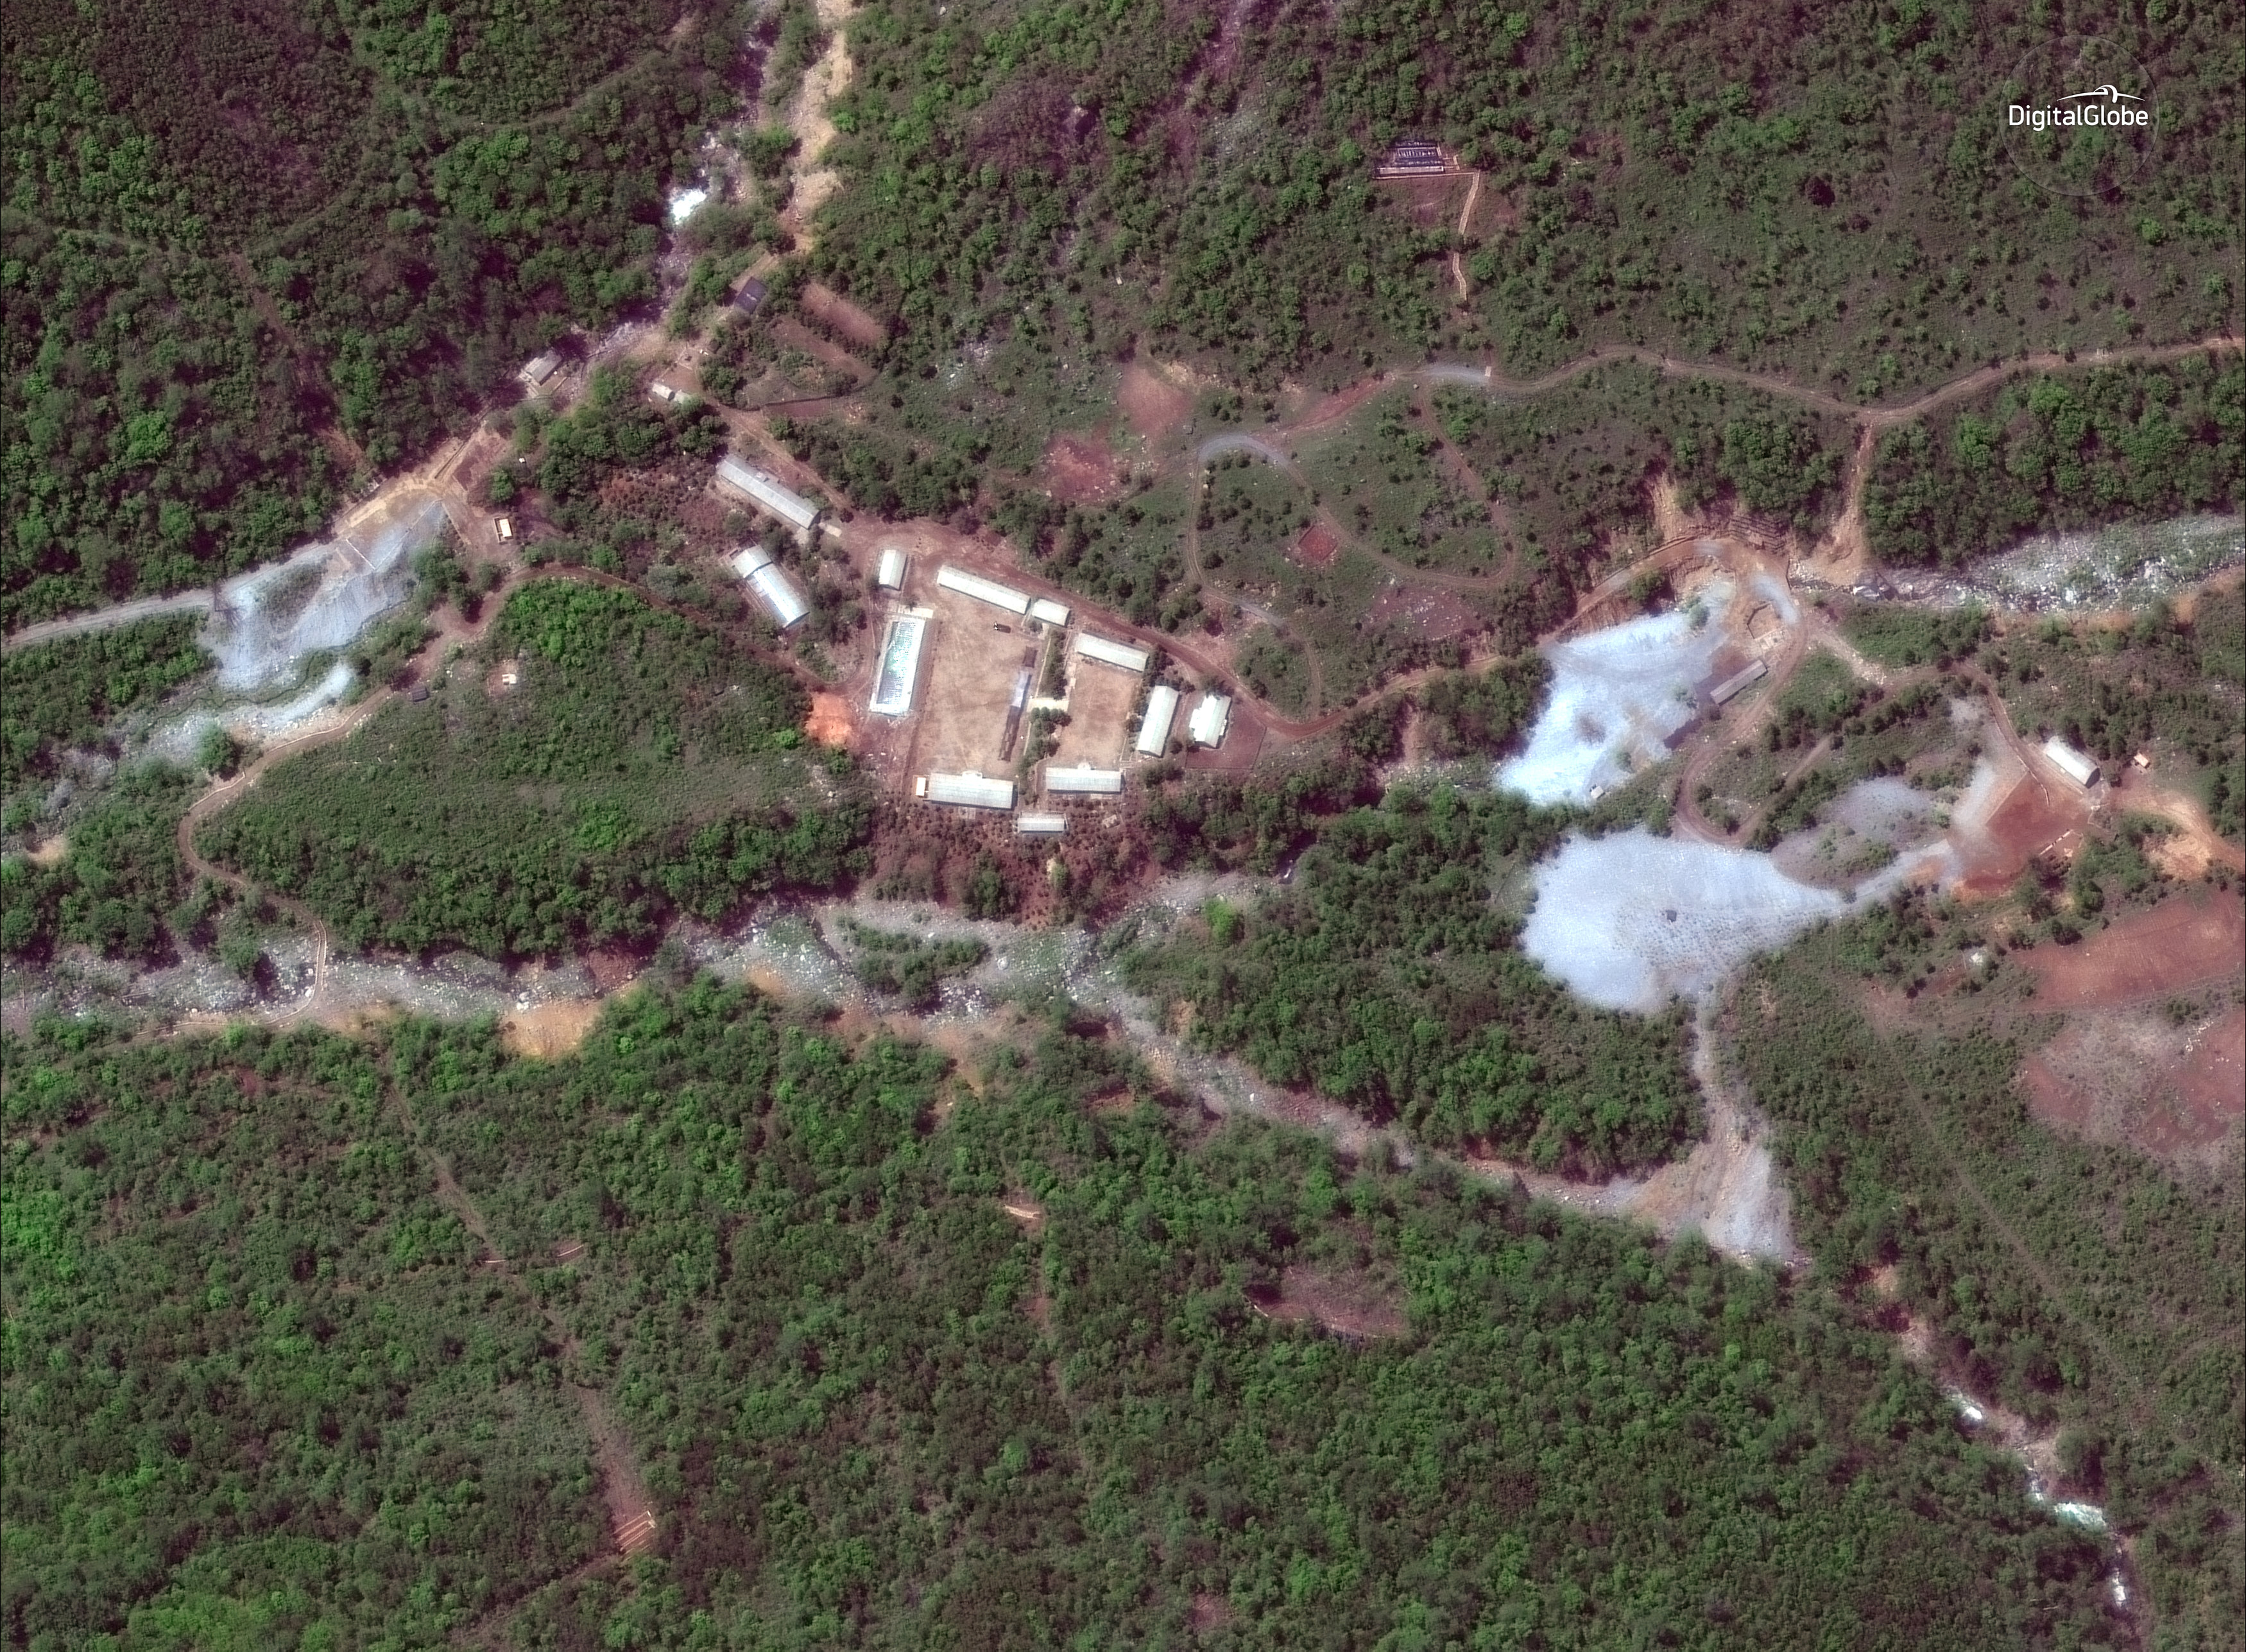 North Korea's Punggye-ri nuclear test facility is shown in this DigitalGlobe satellite image in North Hamgyong Province, North Korea, May 23, 2018.    Satellite image u00a92018 DigitalGlobe, a Maxar company/ Photo: REUTERS